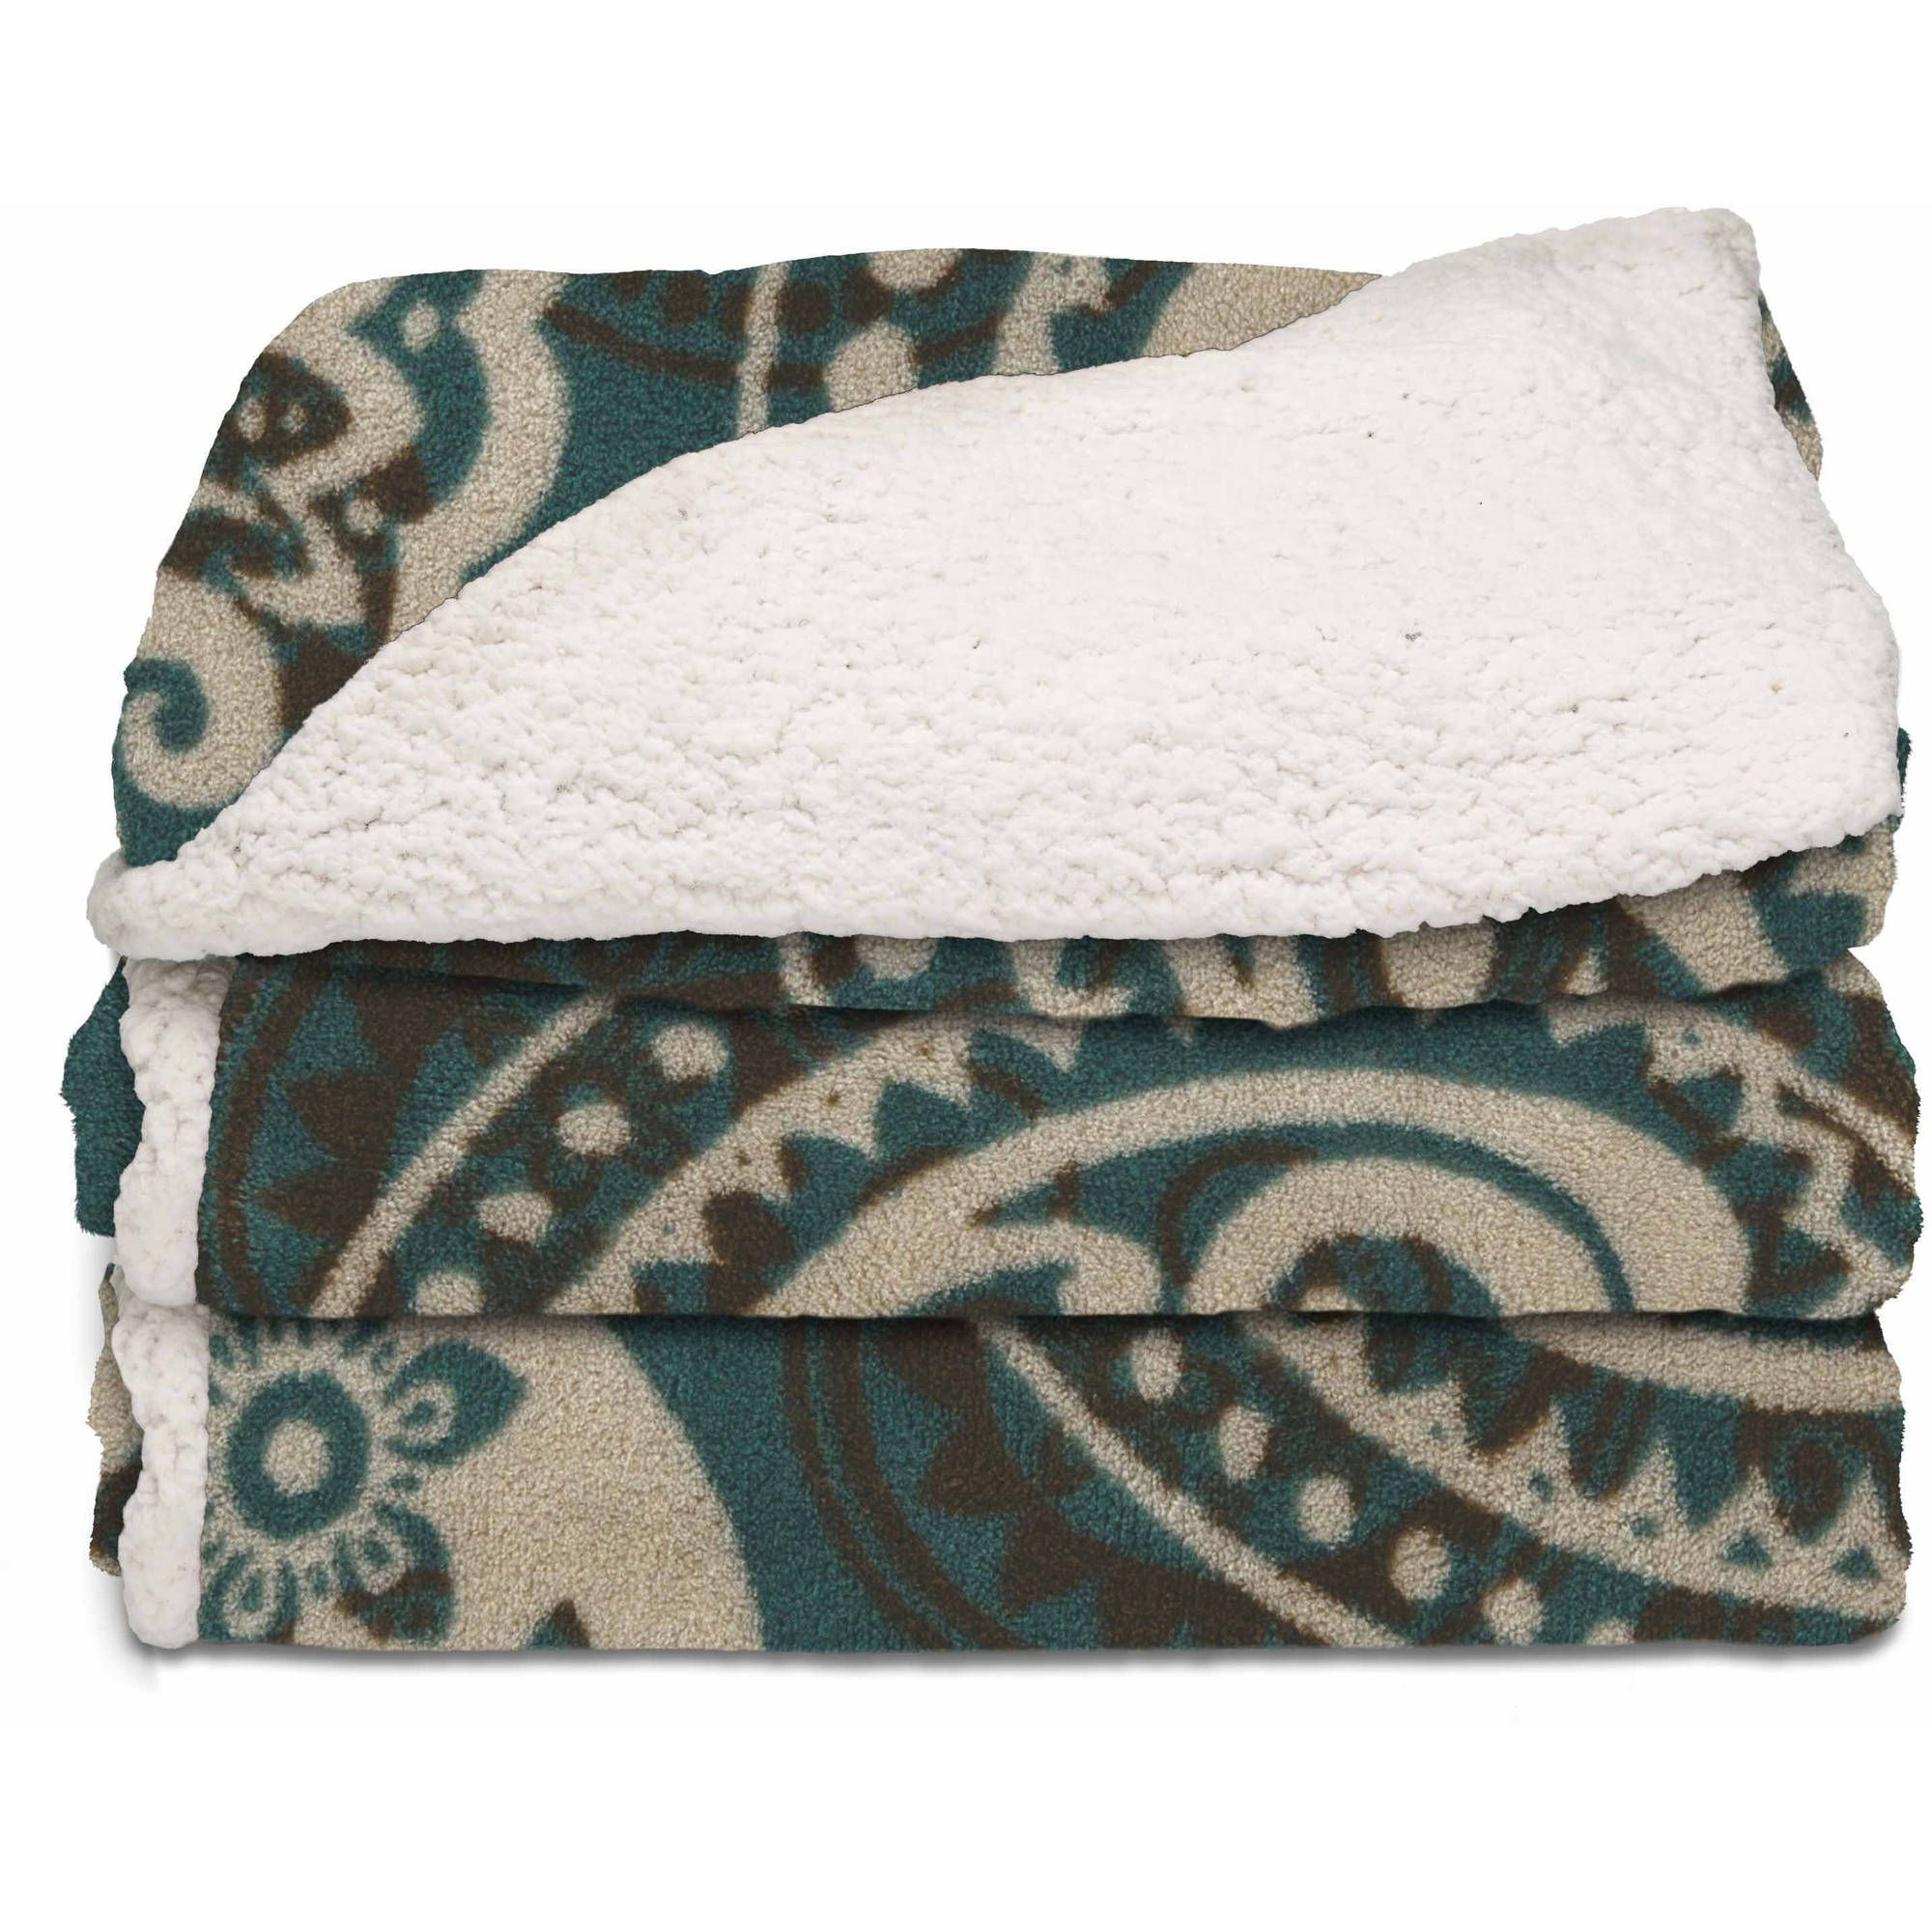 Search and Compare more Bedding Deals at http